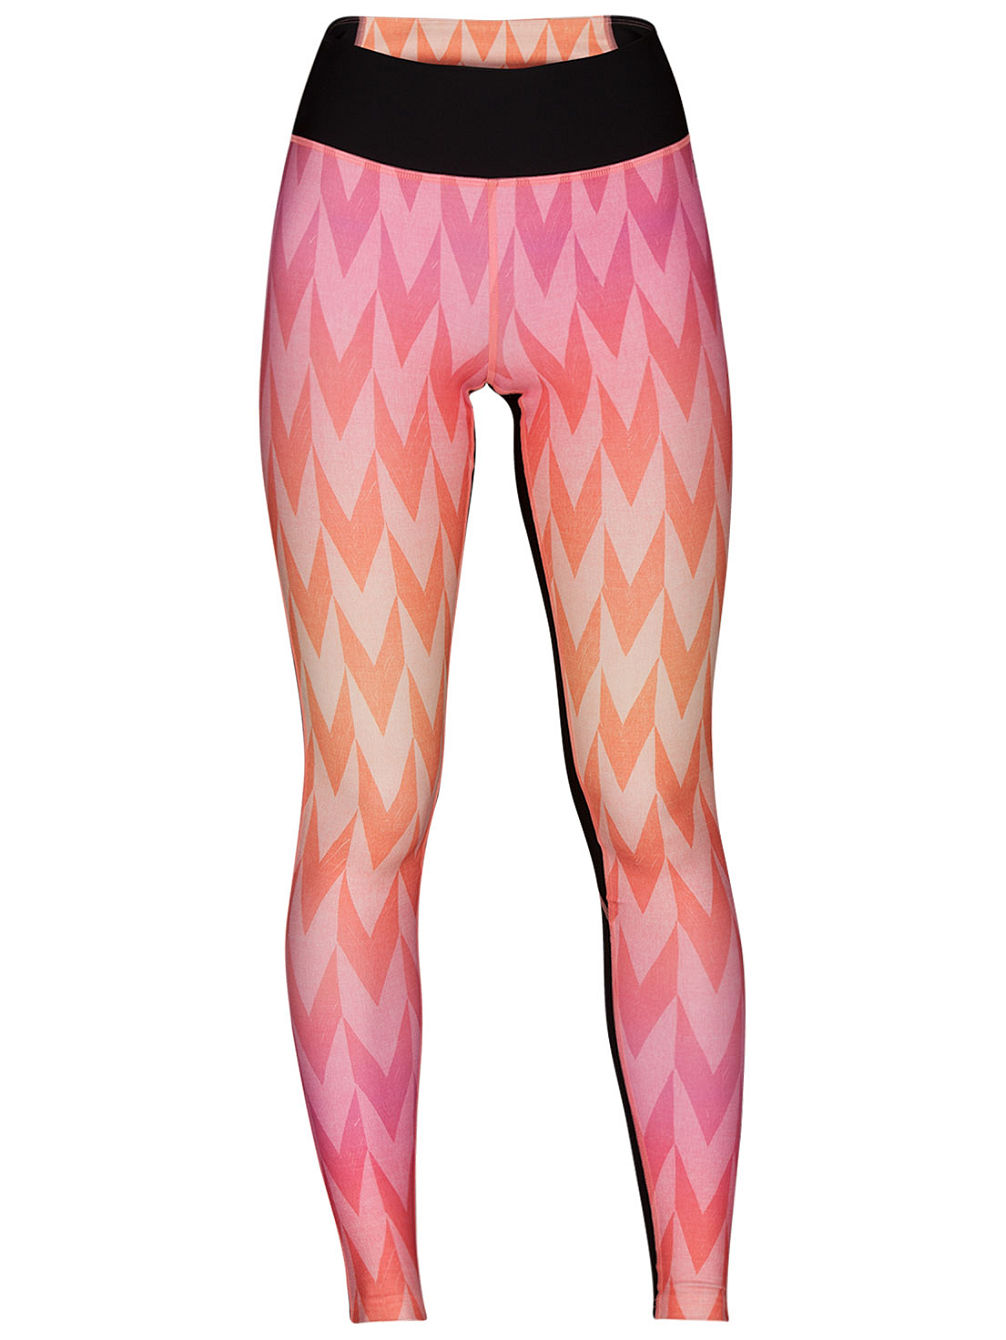 Mesh Bula Surf Leggings